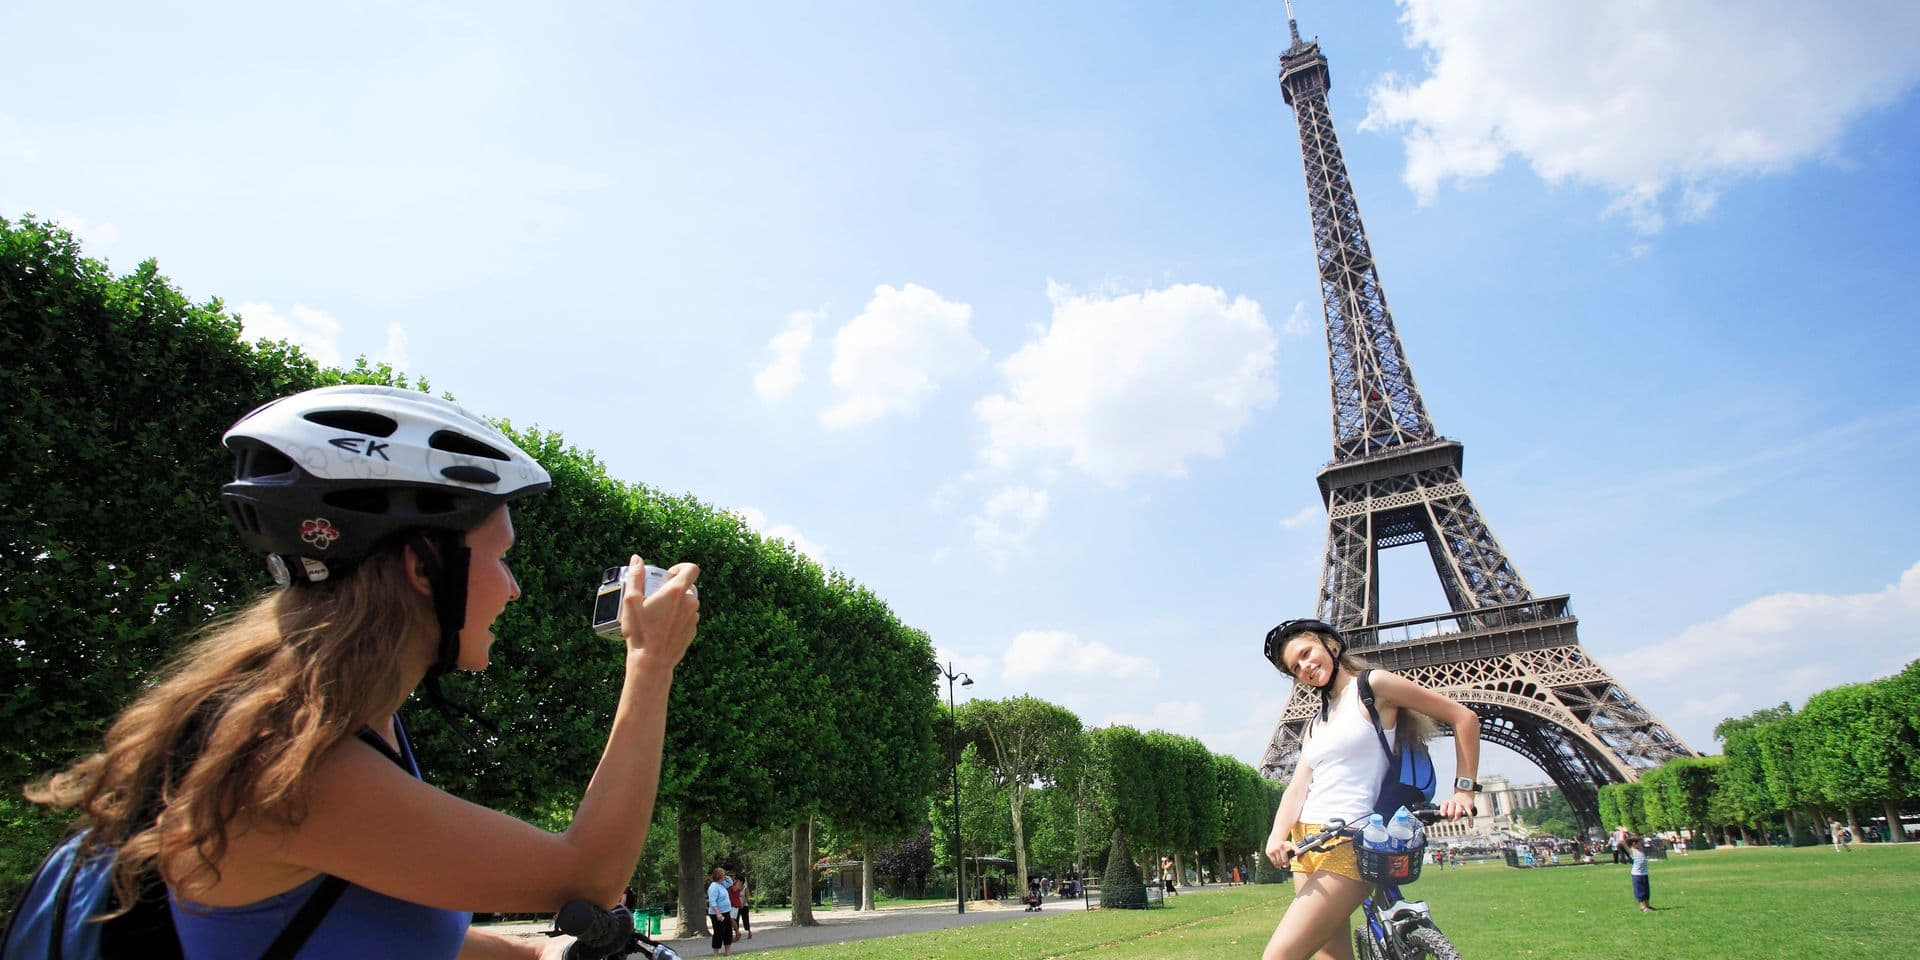 France, Paris, woman taking picture of other woman, Eiffel tower in background